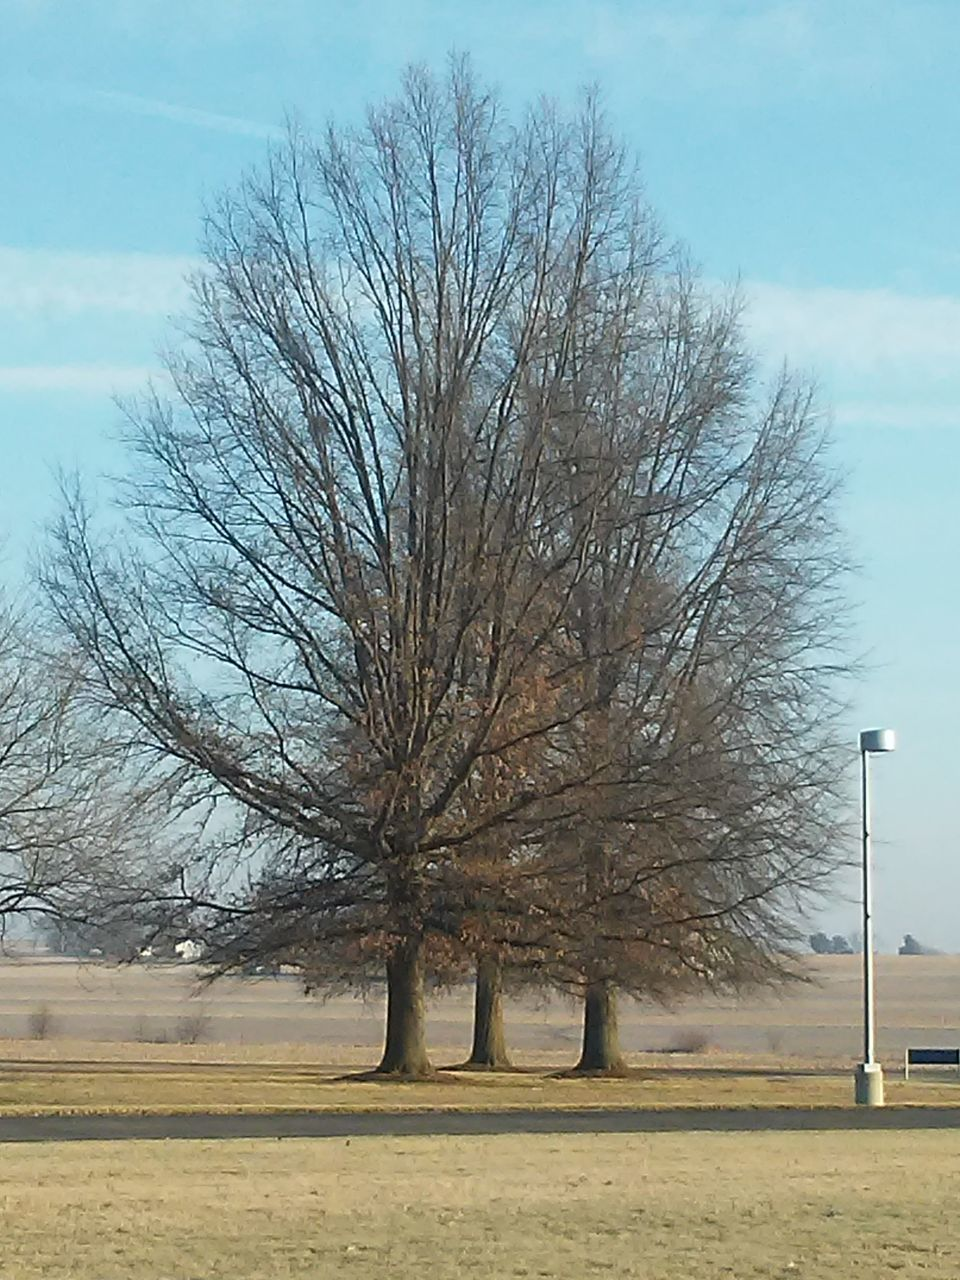 bare tree, tree, tranquility, sky, landscape, day, nature, beauty in nature, outdoors, lone, no people, scenics, branch